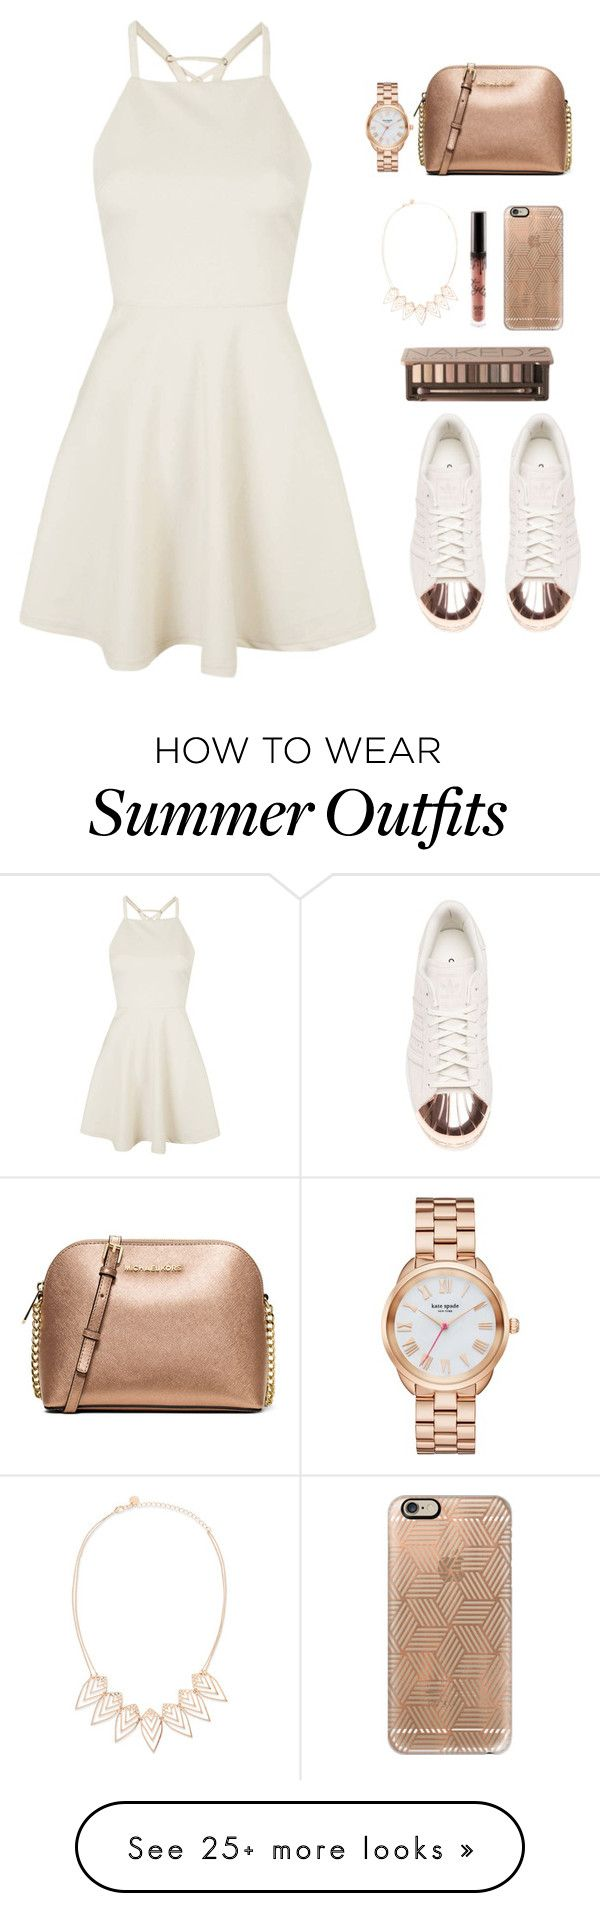 Rose gold and white summer outfit by emmeleialouca on Polyvore featuring Topshop, adidas, MICHAEL Michael Kors, Casetify, Jules Smith, Urban Decay and Kate Spade